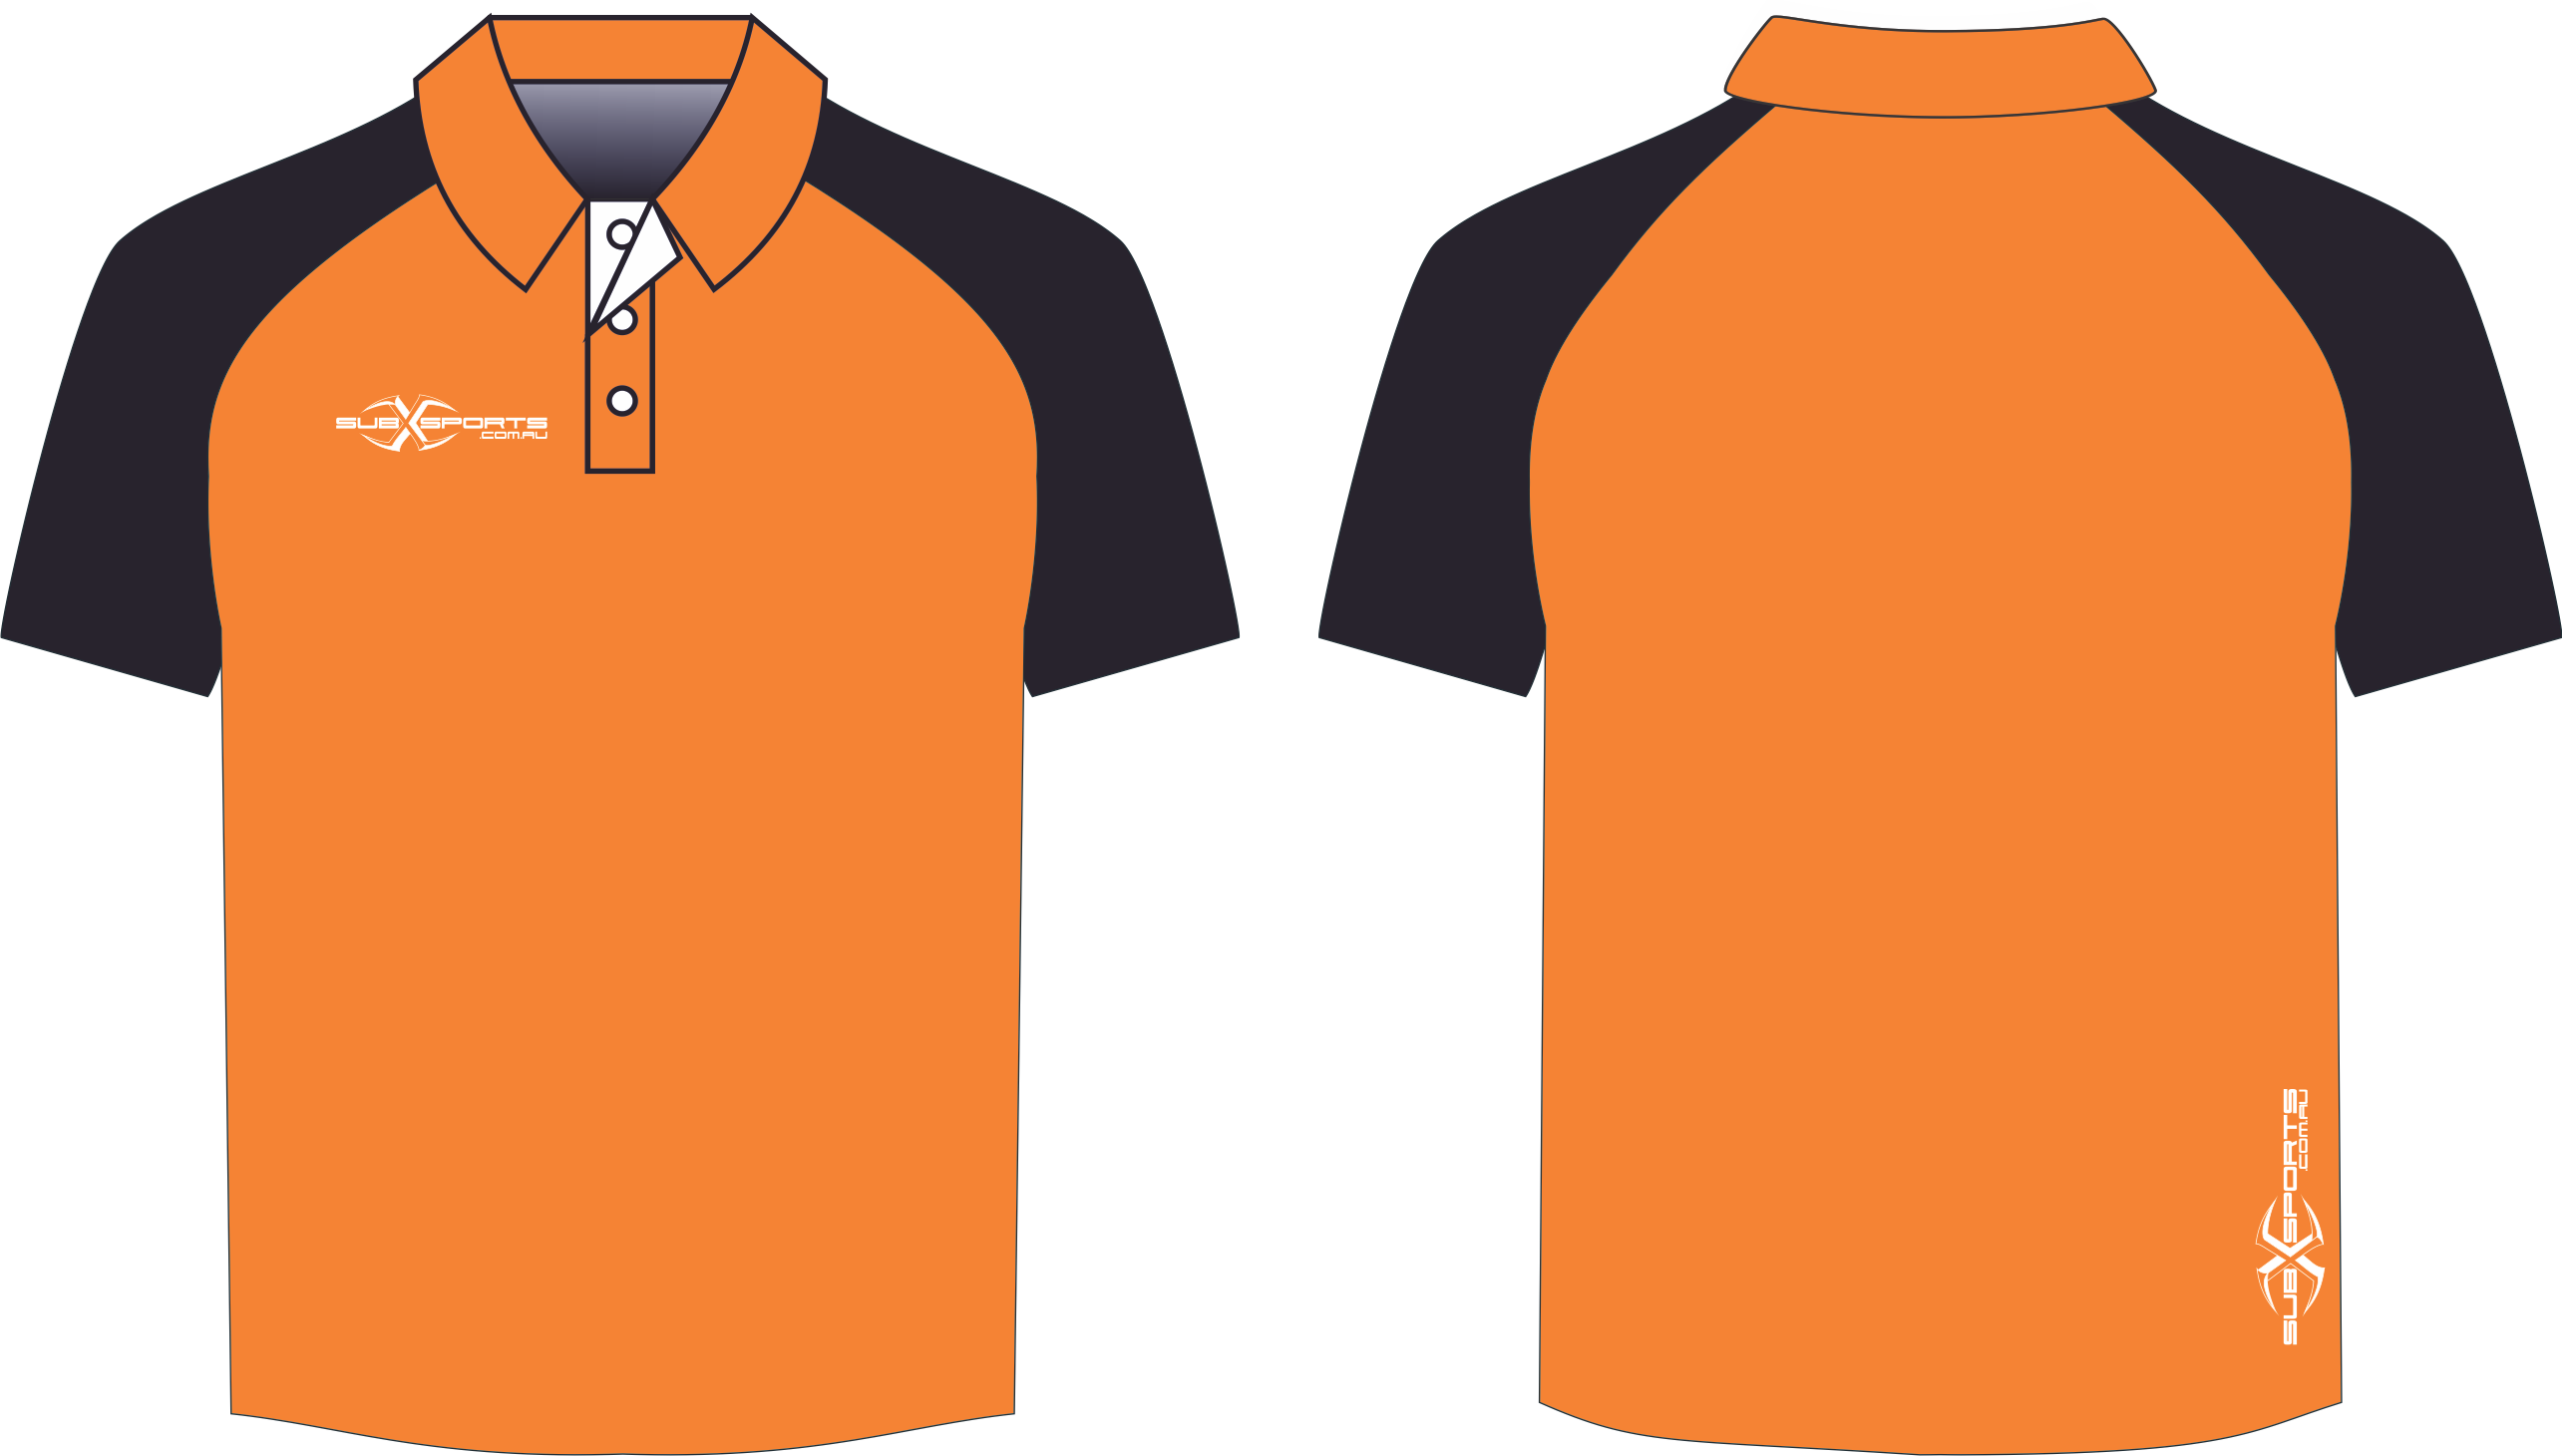 S206XP Sub Polo Orange Black.png